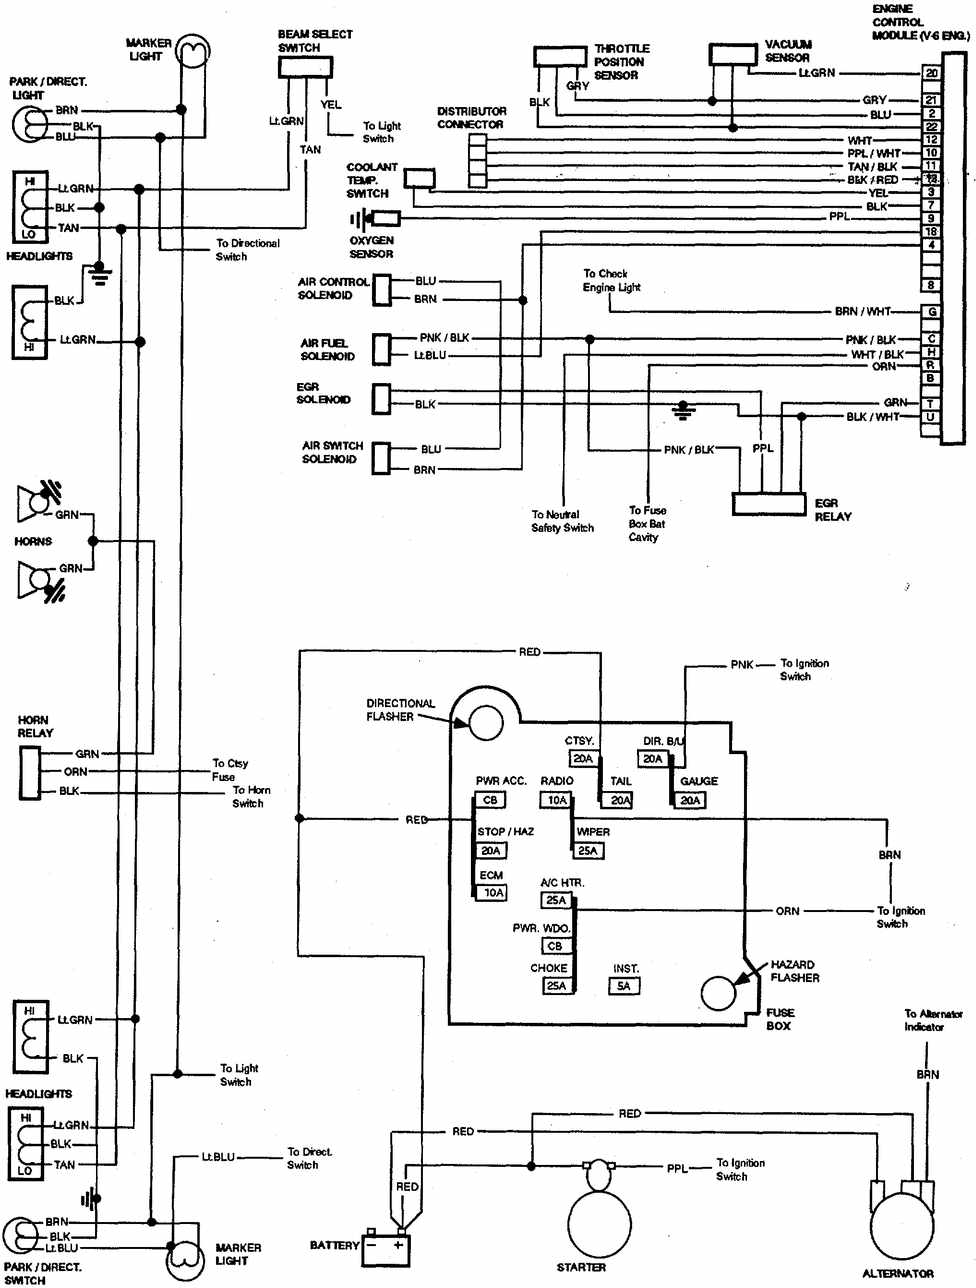 Controls For Gas Valve Diagram moreover Wiring Diagram For Electric Fireplace also Wiring Diagram For Honeywell Y Plan together with Oil Burner Pump Diagram in addition Bryant Air Conditioner Wiring Diagrams. on honeywell t87f thermostat troubleshooting